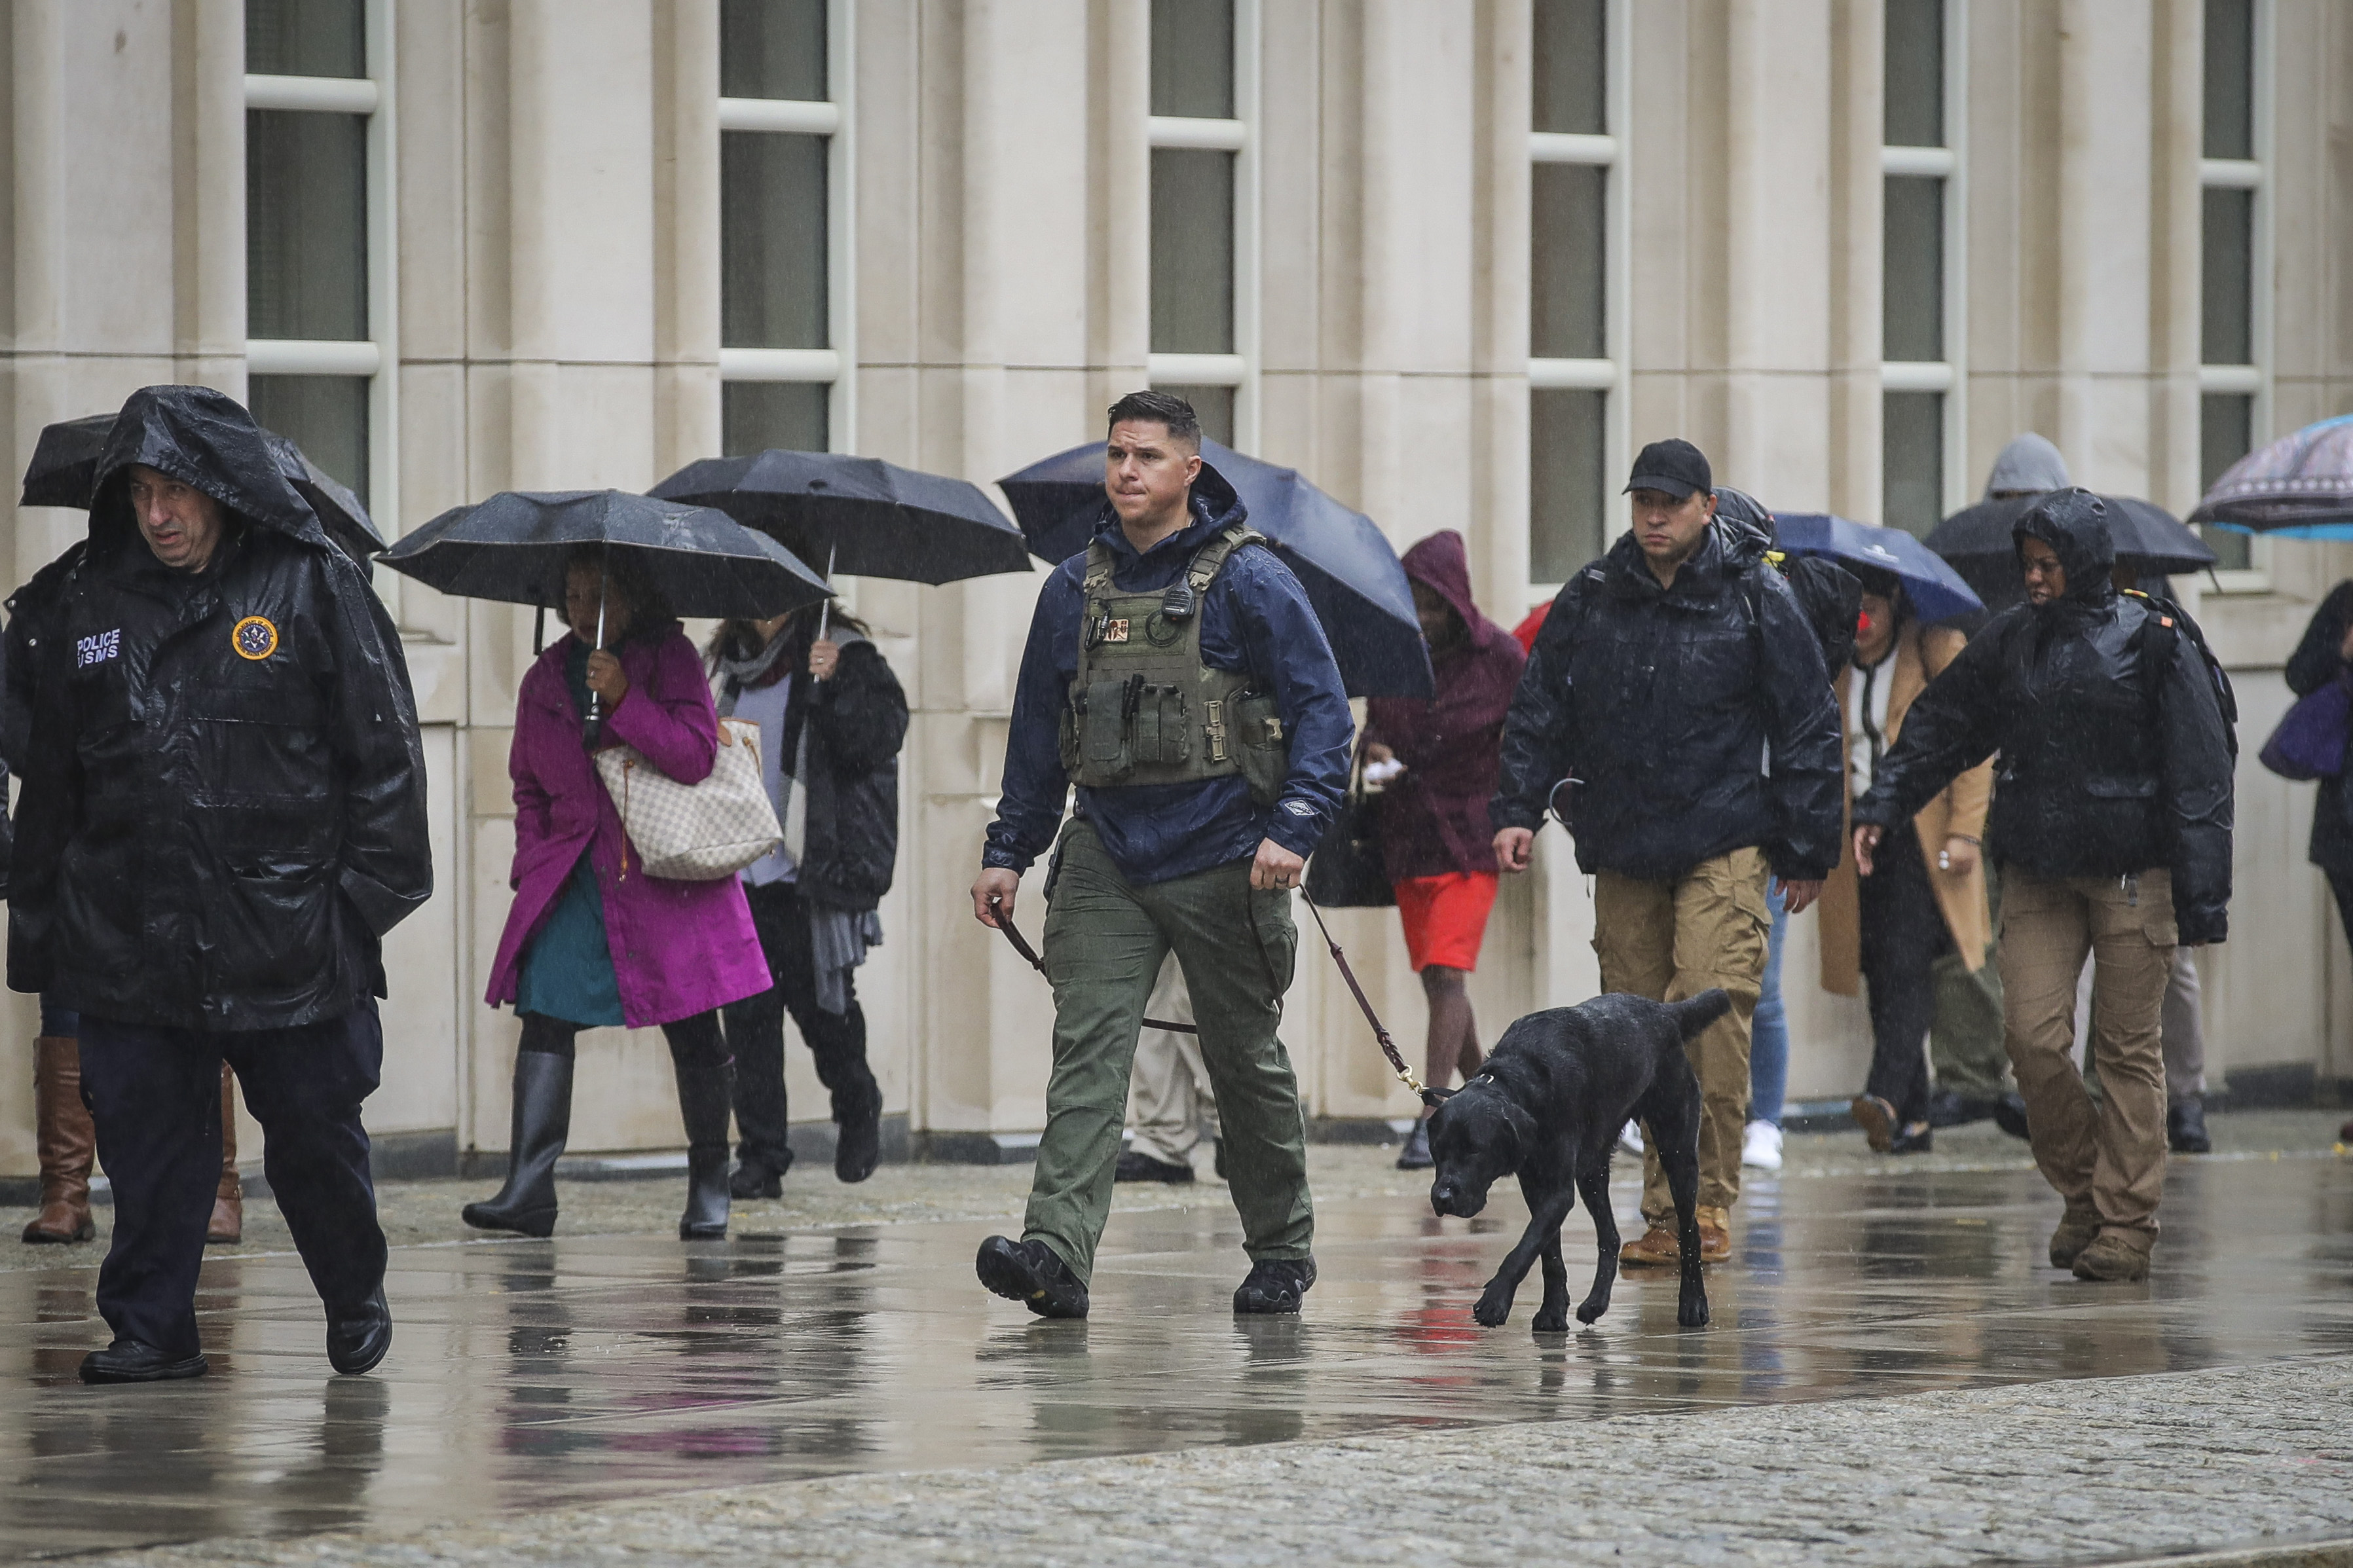 A member of the US Marshals patrols with a dog outside the United States District Court for the Eastern District of New York on the first day of the trial for Joaquin Guzman, the famed Mexican drug lord known as El Chapo in New York City. El Chapo is accused of trafficking over 440,000 pounds of cocaine, in addition to other drugs, and exerting power through murders and kidnappings as he led the Sinaloa Cartel. The trial is currently in its third week.